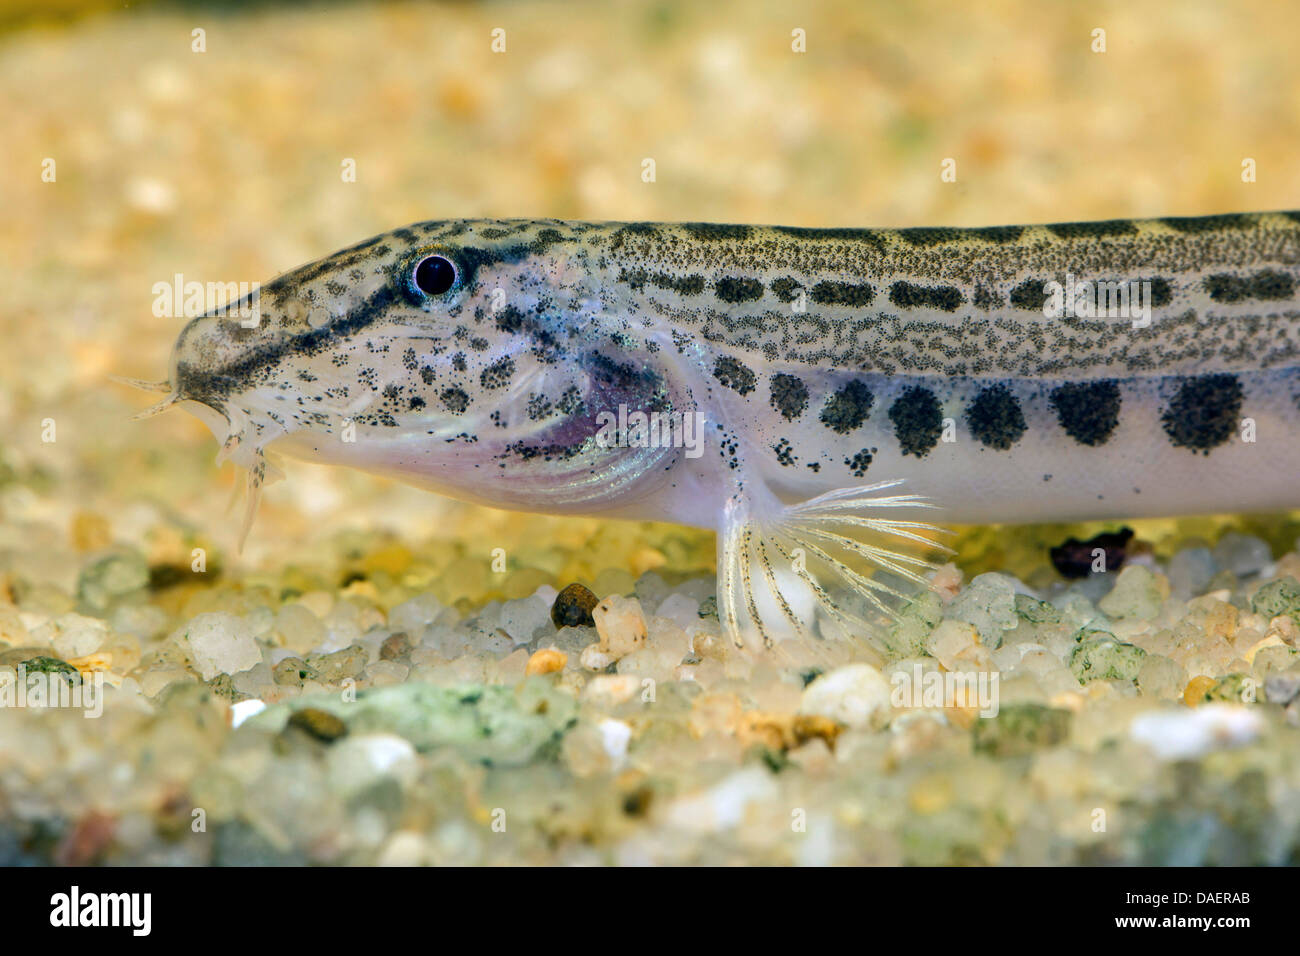 spined loach, spotted weatherfish (Cobitis taenia), portrait at a gravel ground - Stock Image